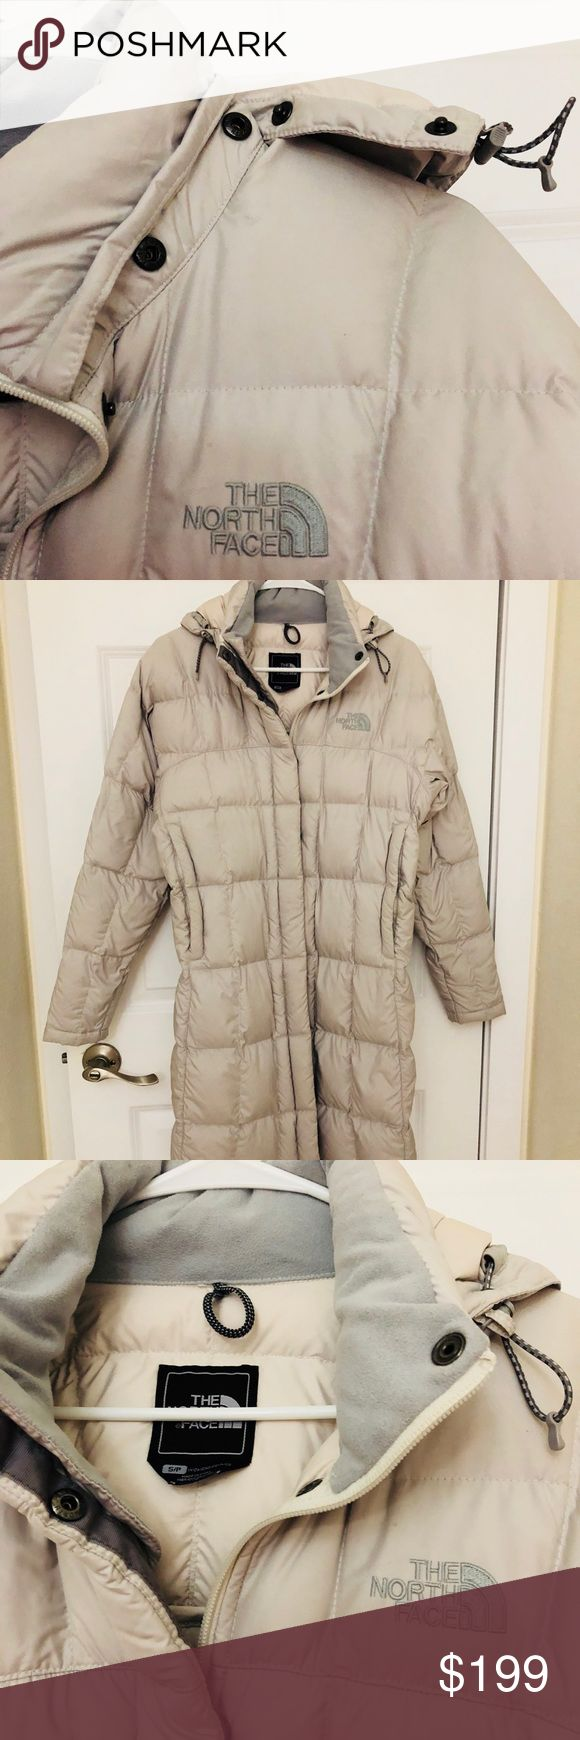 """NORTH FACE METROPOLIS PARKA GOOSE 600 Looks brand new. I don't think I ever wore it. Turned it to be too big for me so if you are taller than 5'2"""" this will look great on you! Light silvery gray color. Fits different sizes. Labeled small women's! Side pockets and detachable hood. Interior zippered pocket. Snaps or zips up front. Super cute! NO LOW BALL OFFERS OR TRADES. 🎁❤️ ships fast! 5 star seller! Retails $389. A steal at this price. Can't lower much. Posh takes a chunk sorry! The North…"""